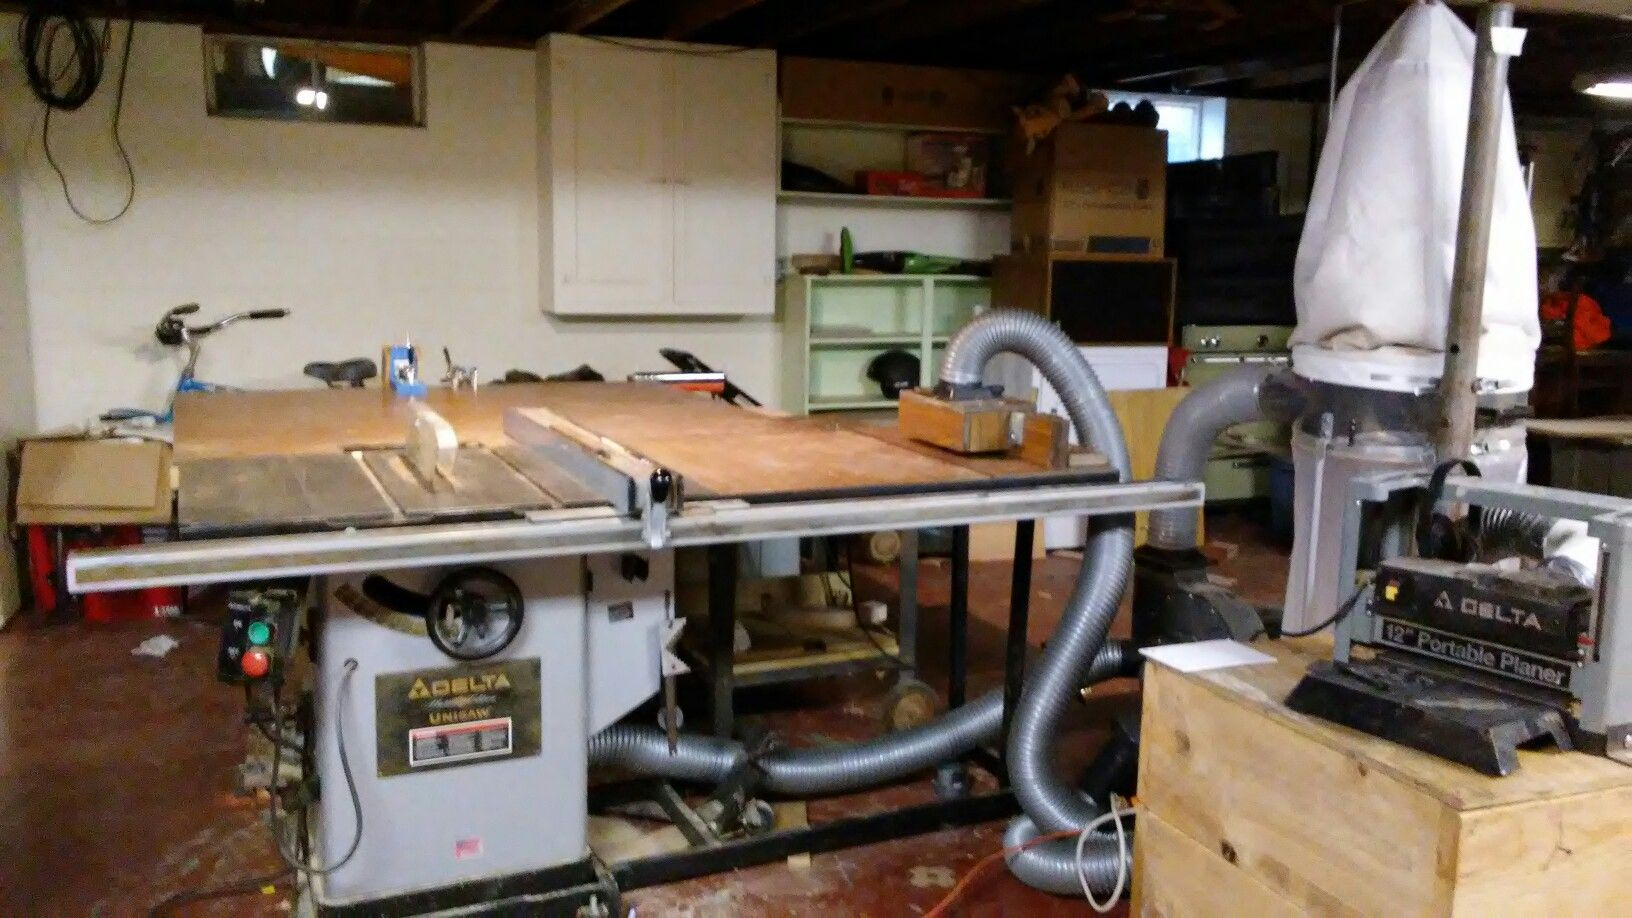 My new table saw planer and router table dust collection setup in my new table saw planer and router table dust collection setup in my basement keyboard keysfo Image collections